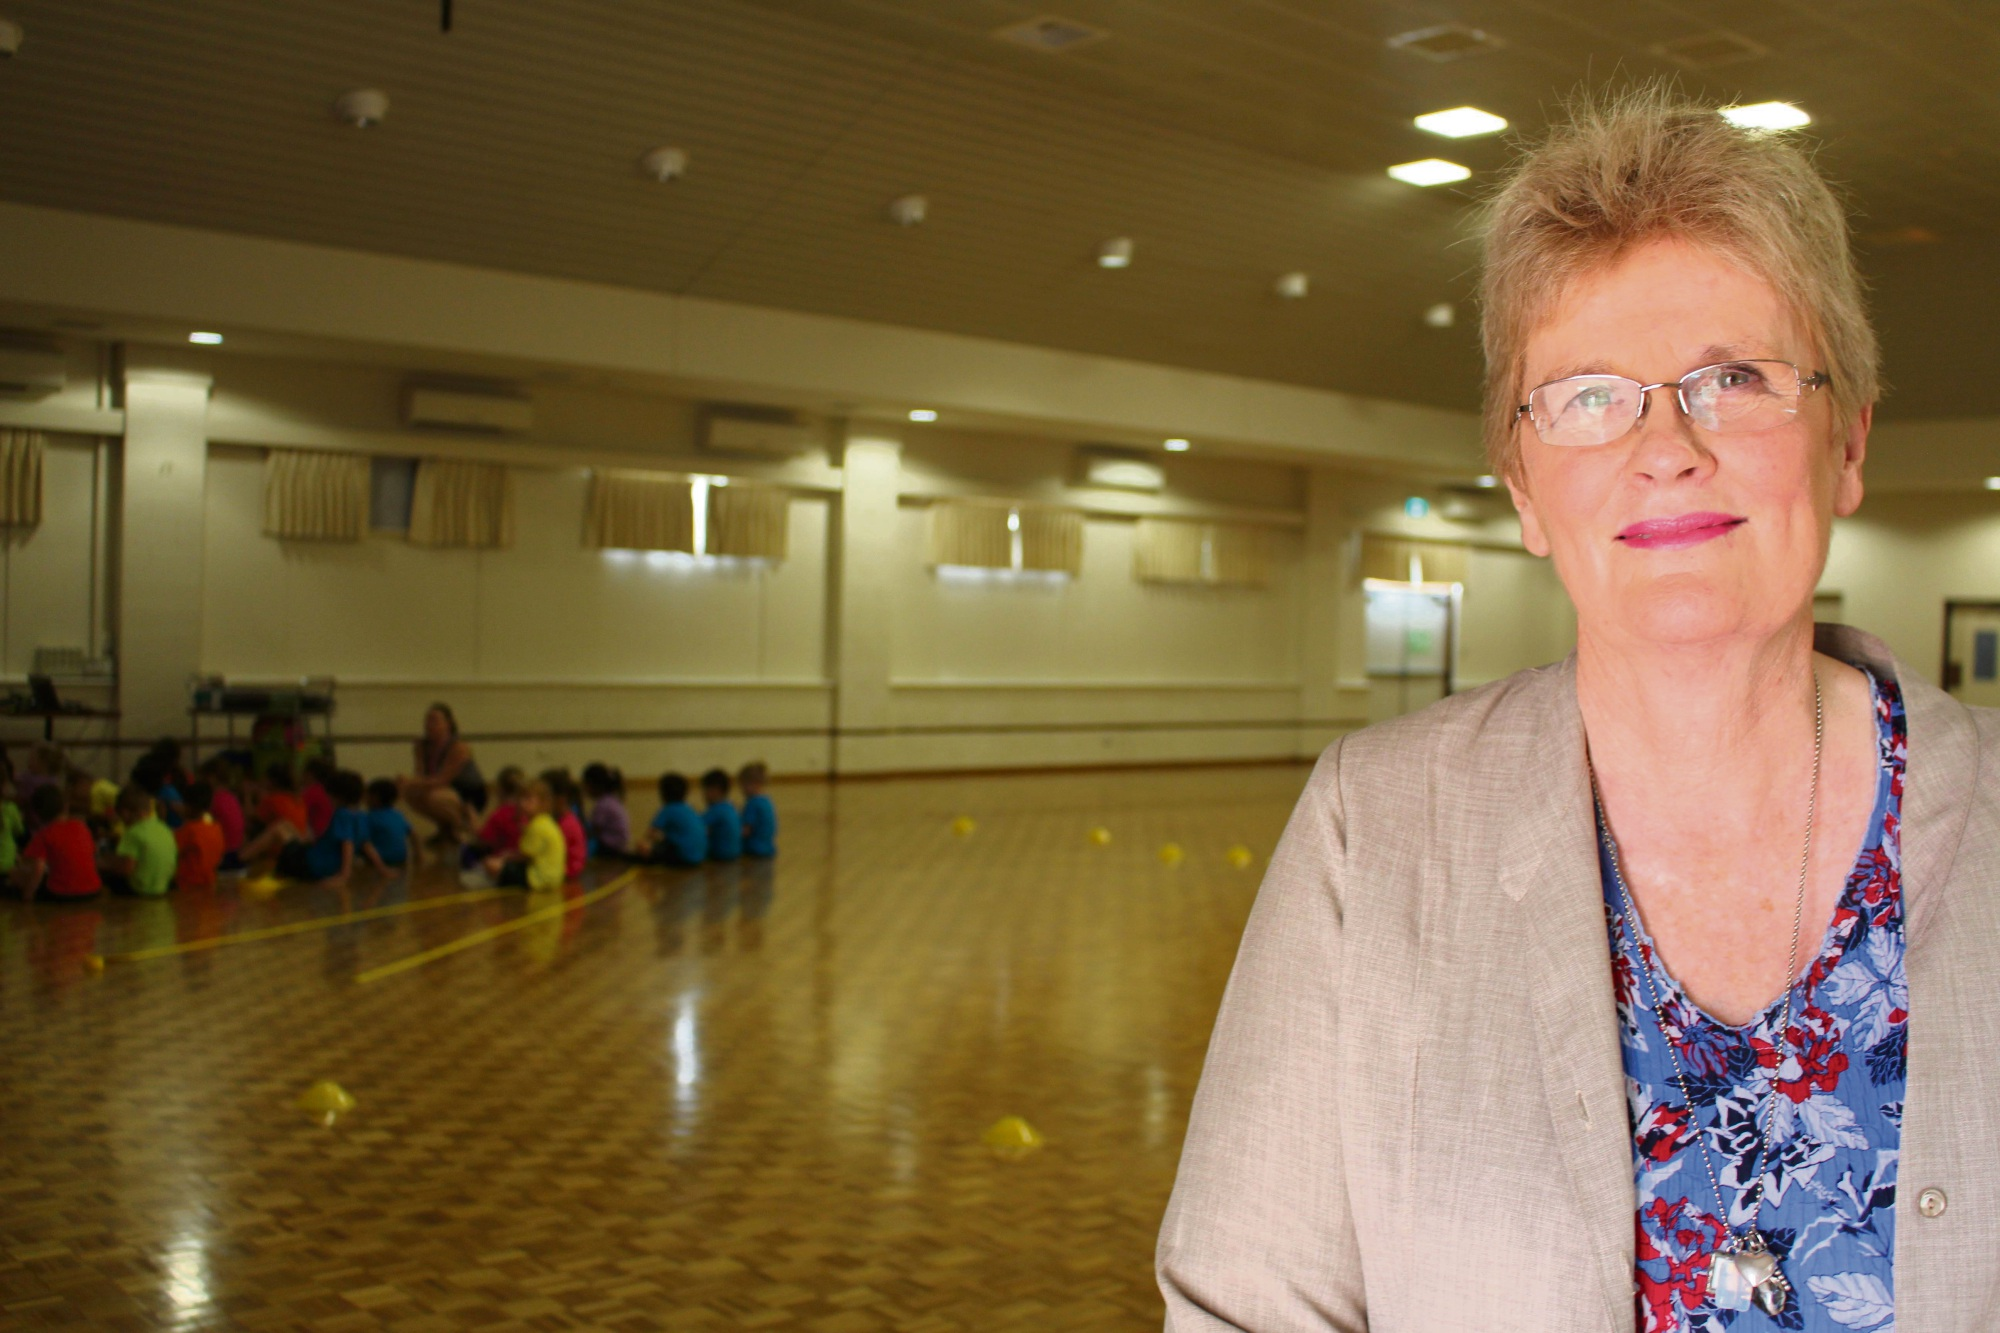 St Jerome's Primary School principal Helen O'Toole in the hall.